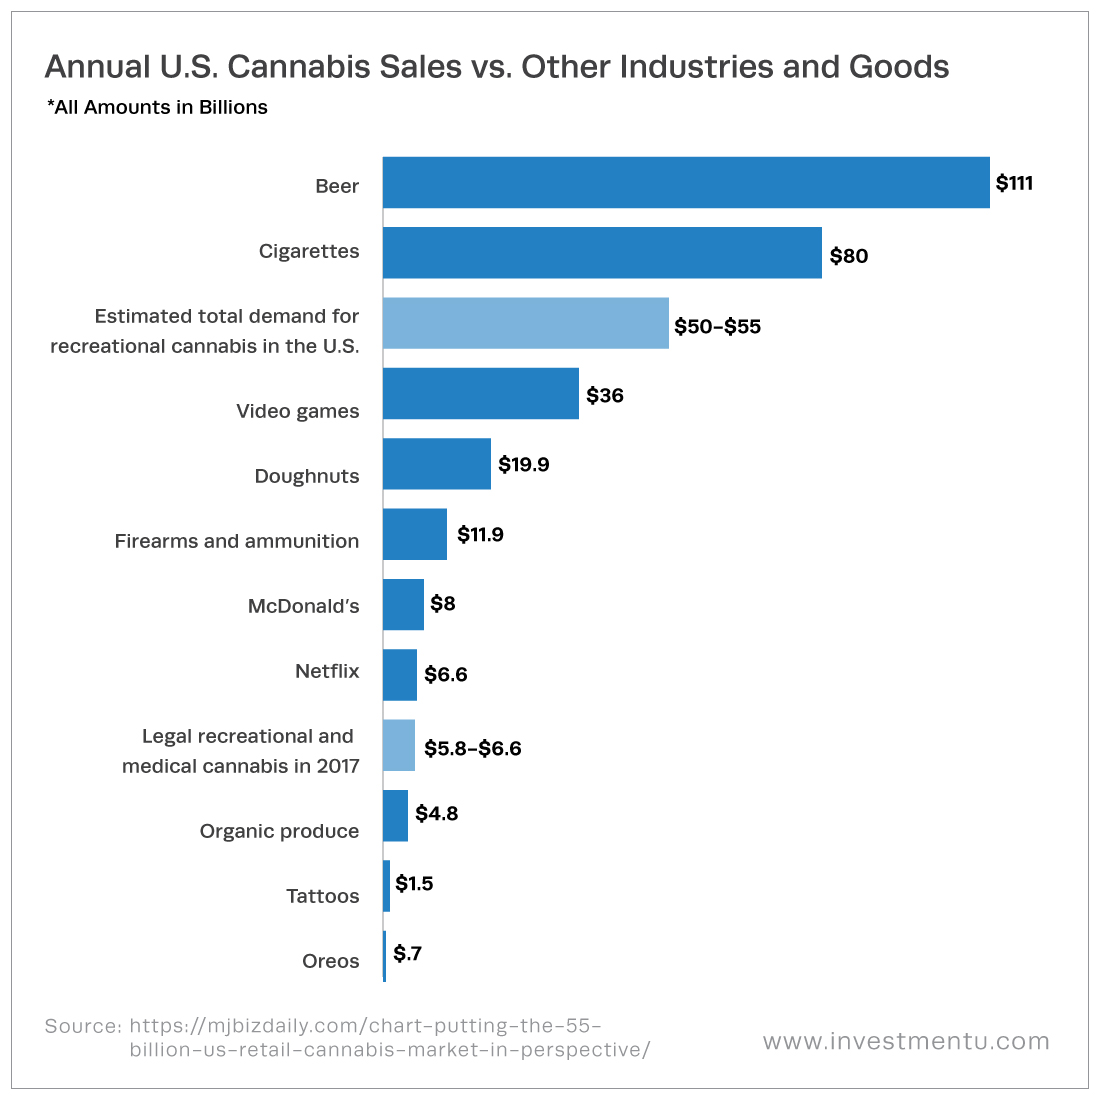 Marijuana Stocks Will Benefit from U.S. Cannabis Sales